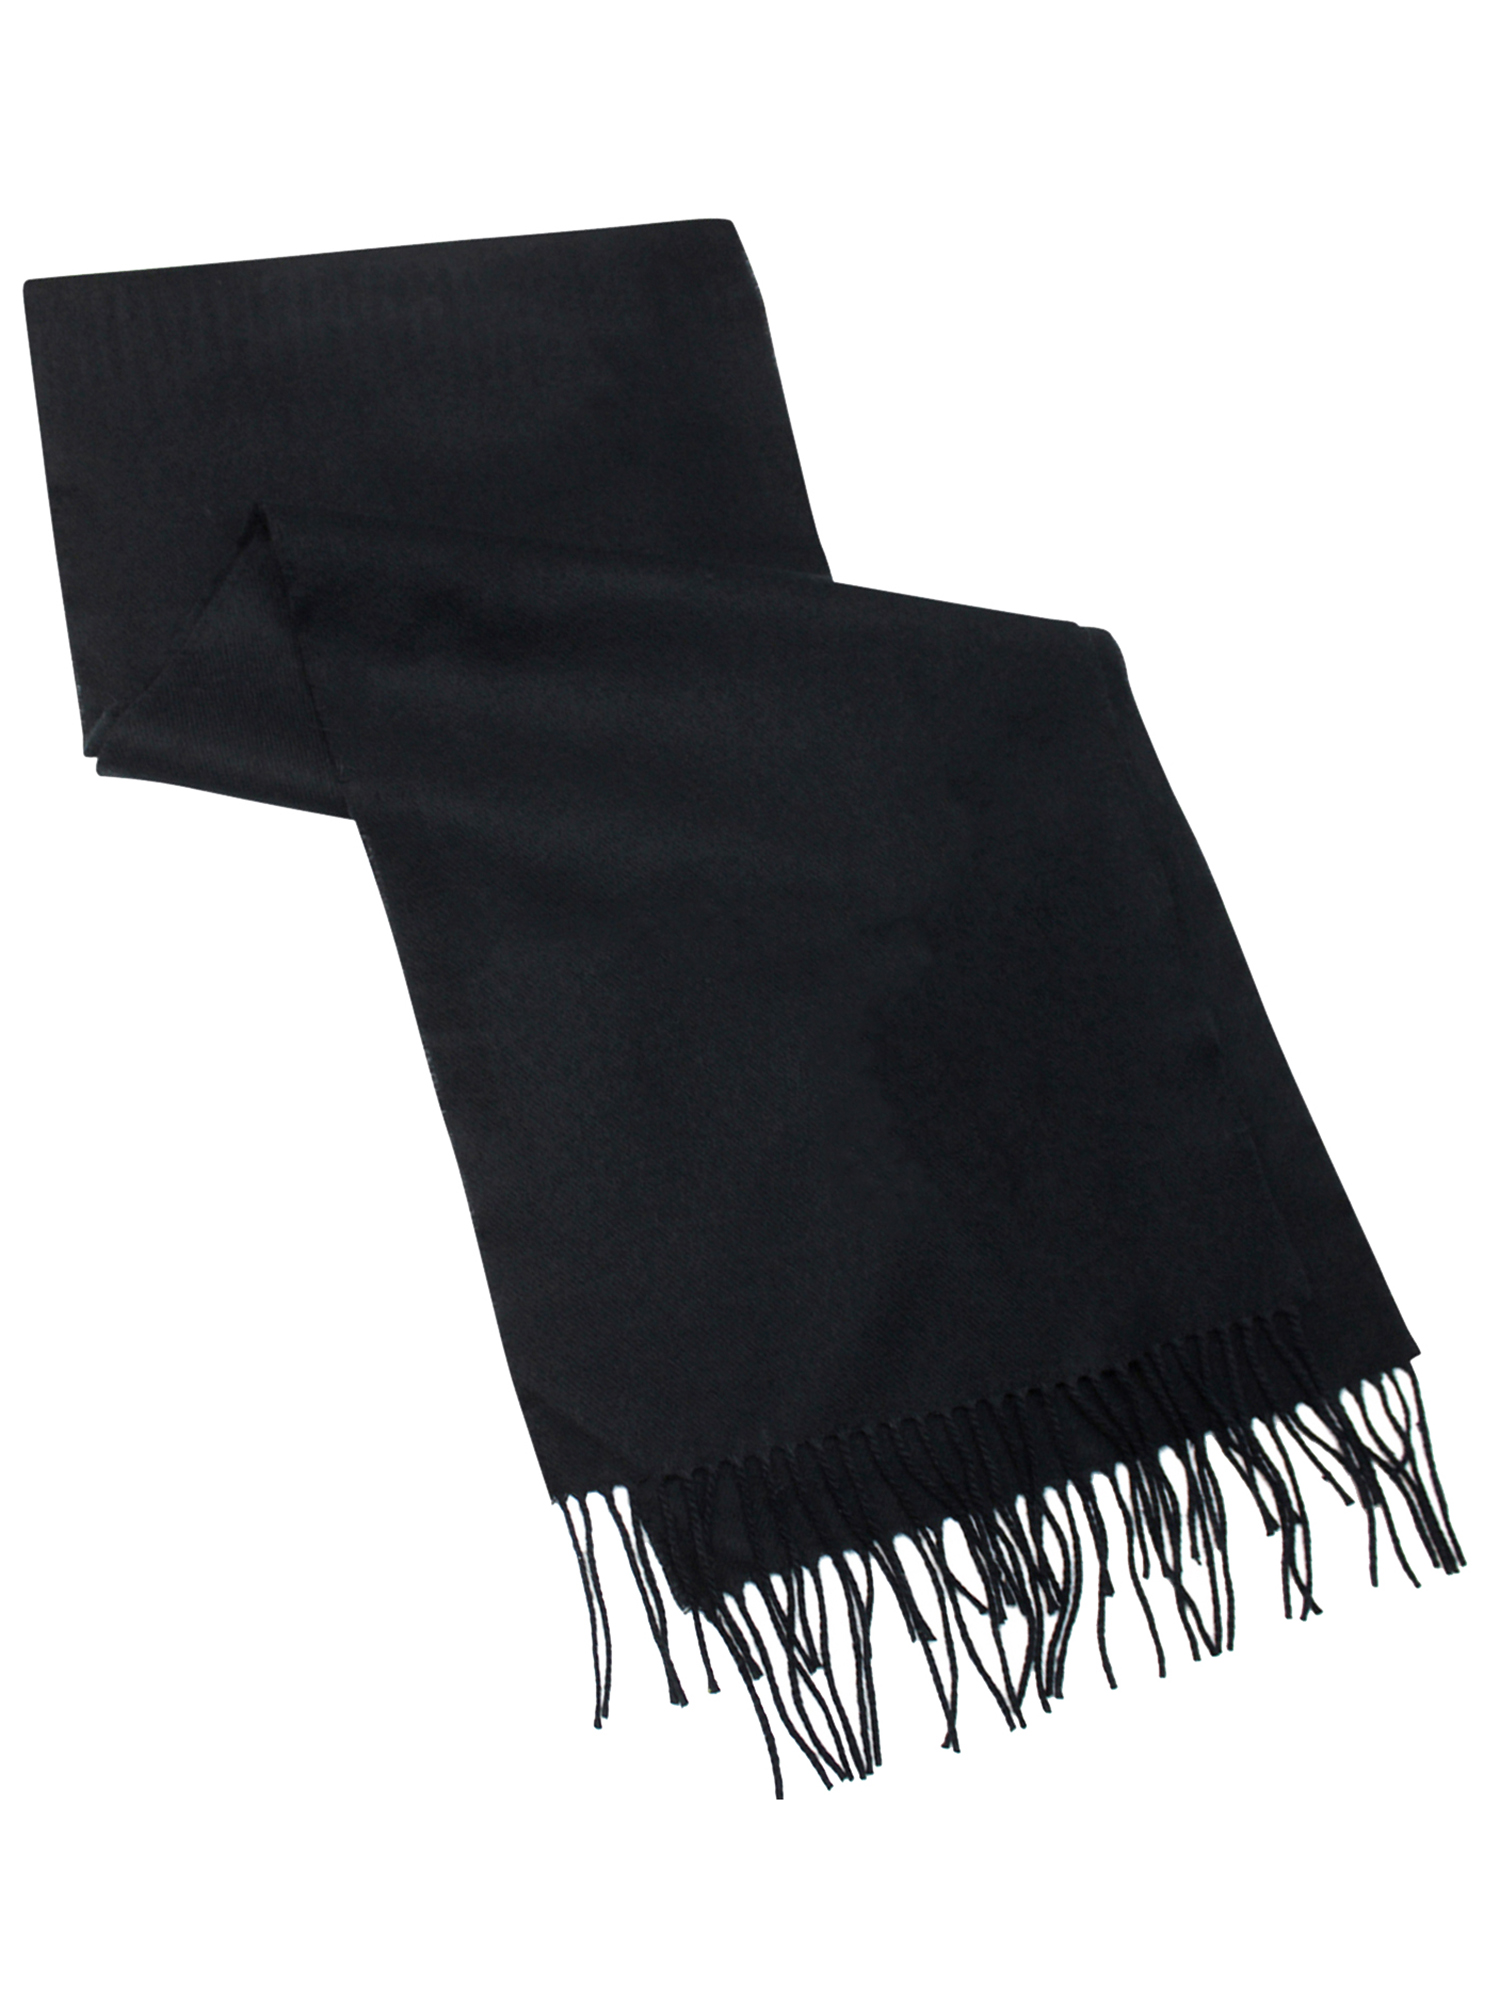 0d7190d6fdef9 CLASSIC-SOFTER-THAN-CASHMERE-UNISEX-SCARF thumbnail 4